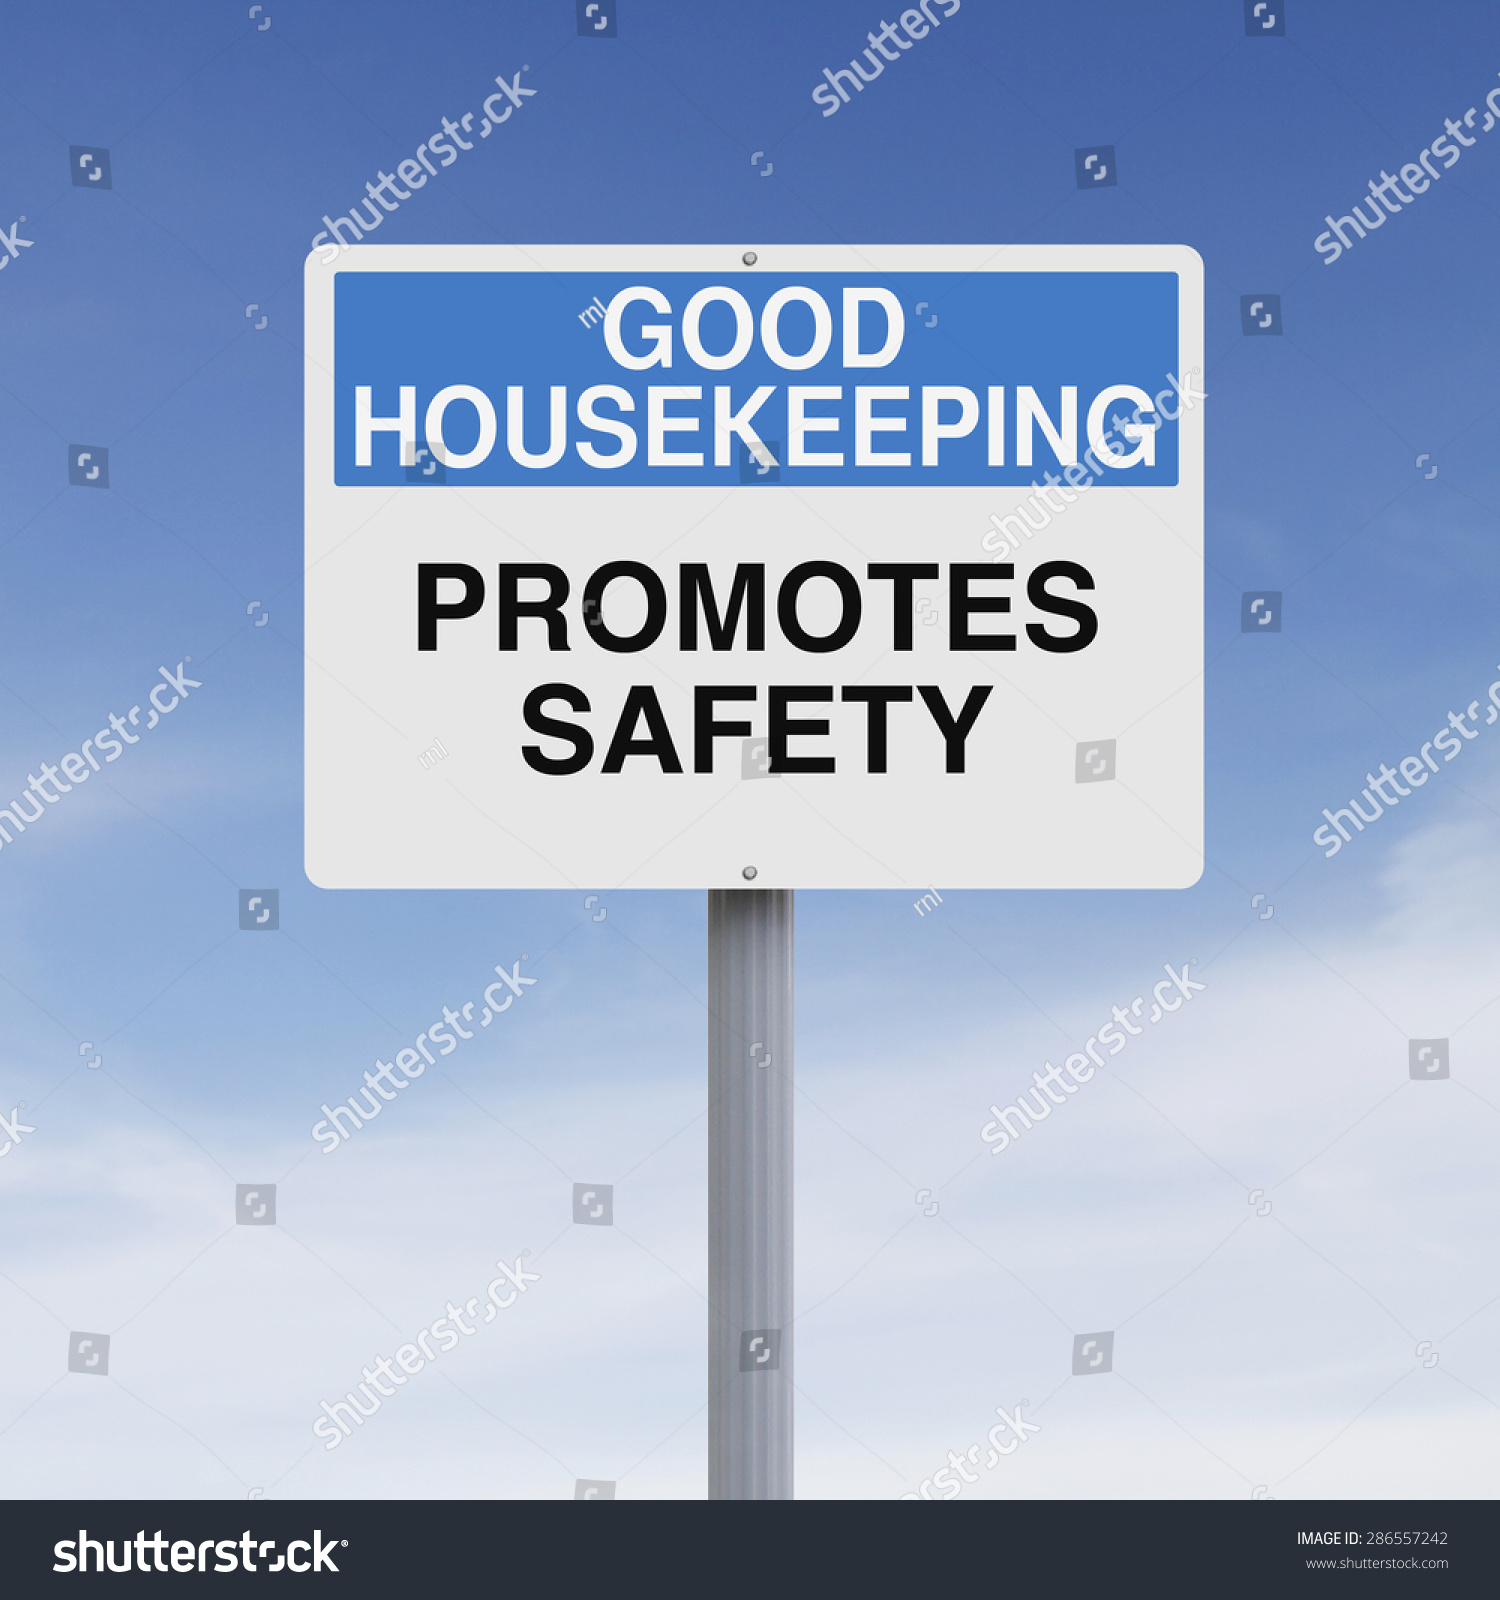 Good Housekeeping: A Modified Road Sign On Good Housekeeping Stock Photo